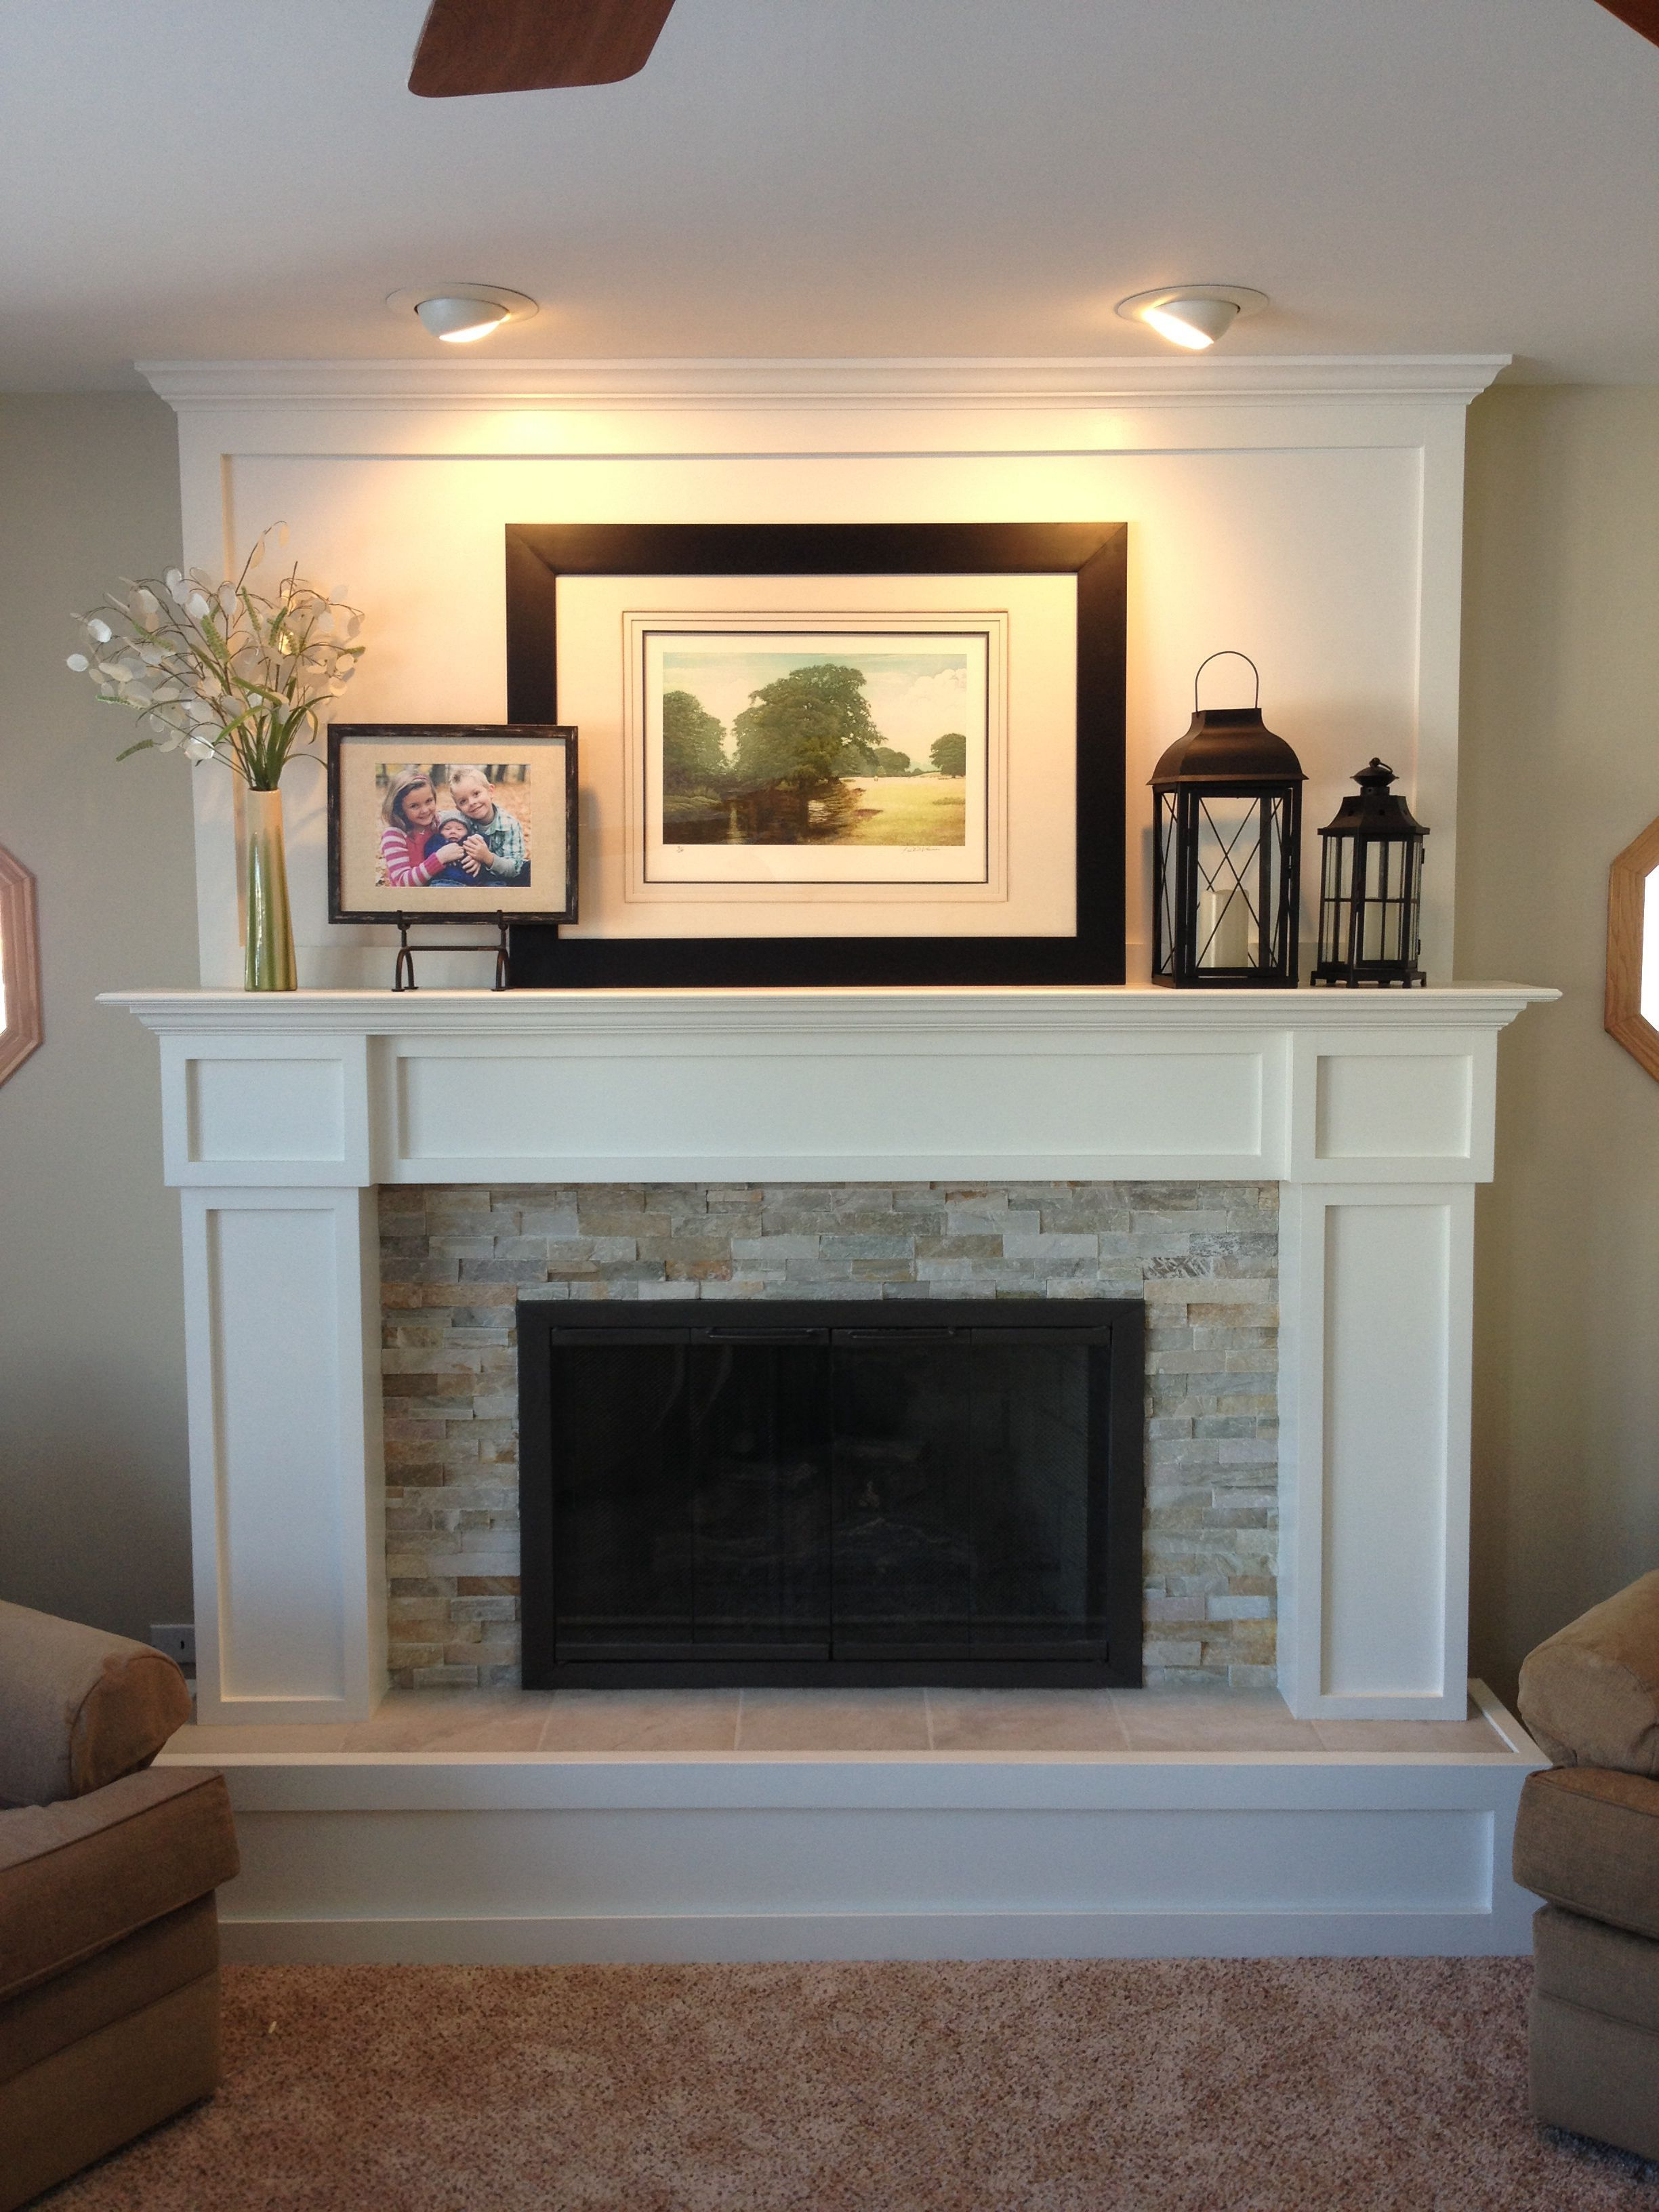 Fake Corner Fireplace New 9 Easy and Cheap Cool Ideas Fireplace Drawing Chairs